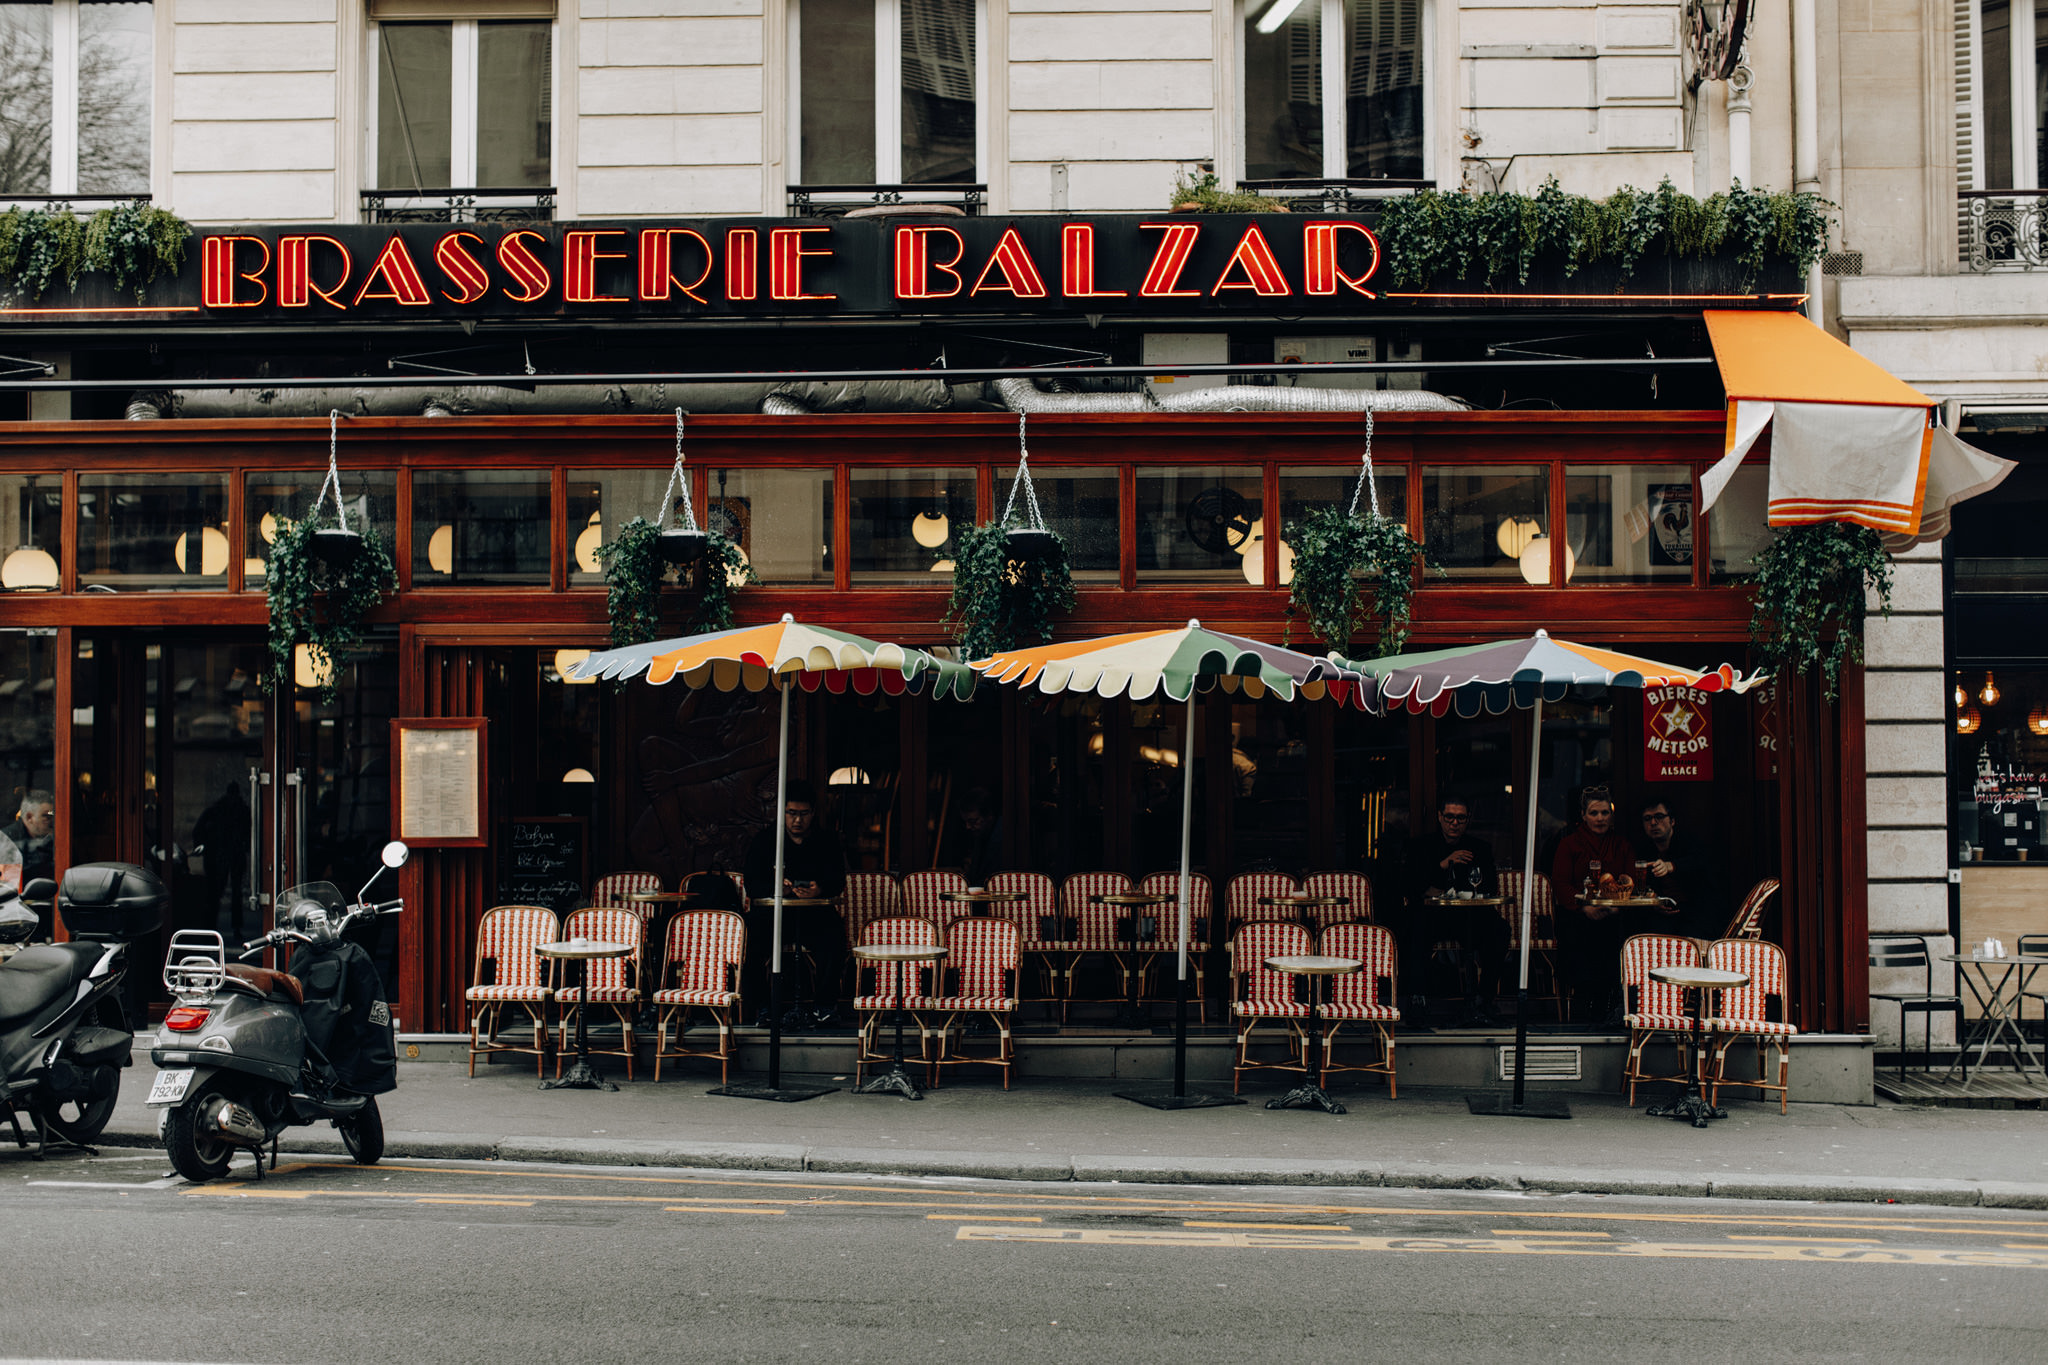 Terrace of Brasserie Balzar in Paris, France